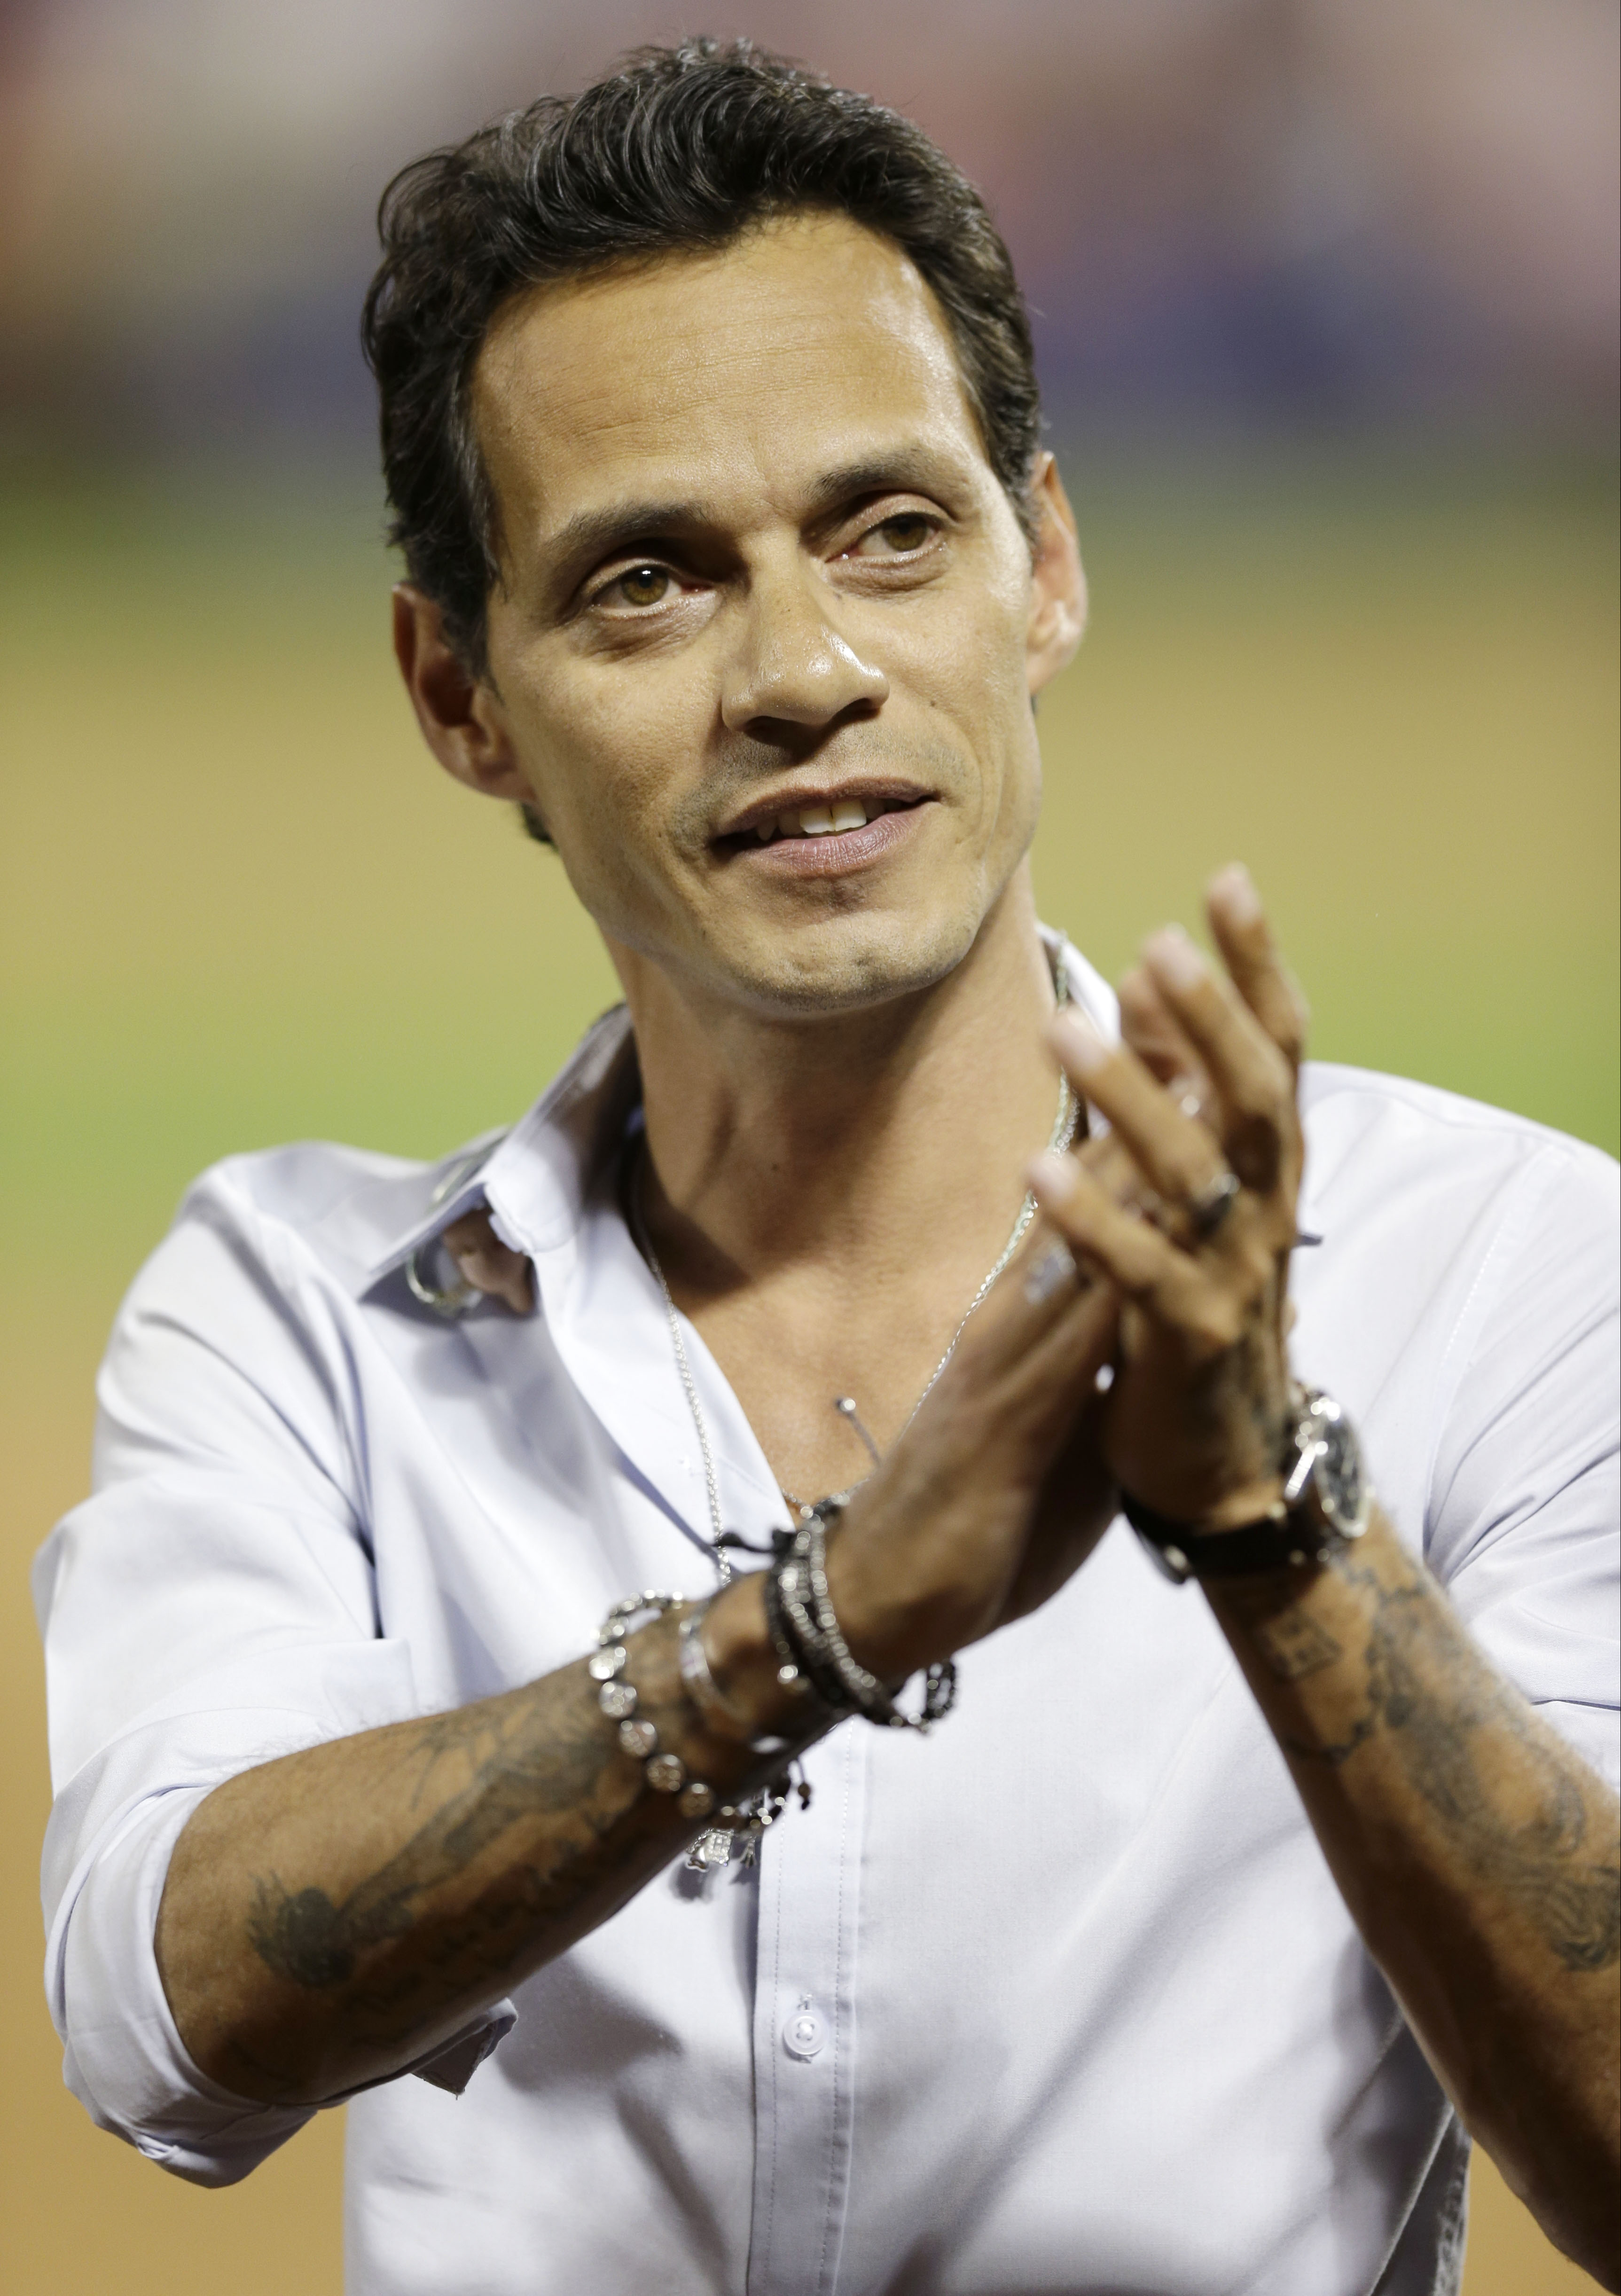 """FILE - This July 16, 2013 file photo shows singer Marc Anthony after singing """"God Bless America"""" during the seventh inning of the MLB All-Star baseball game in New York. Marc Anthony's album, """"3.0"""" will be released on Tuesday, July 23. (AP Photo/Kathy Wil"""